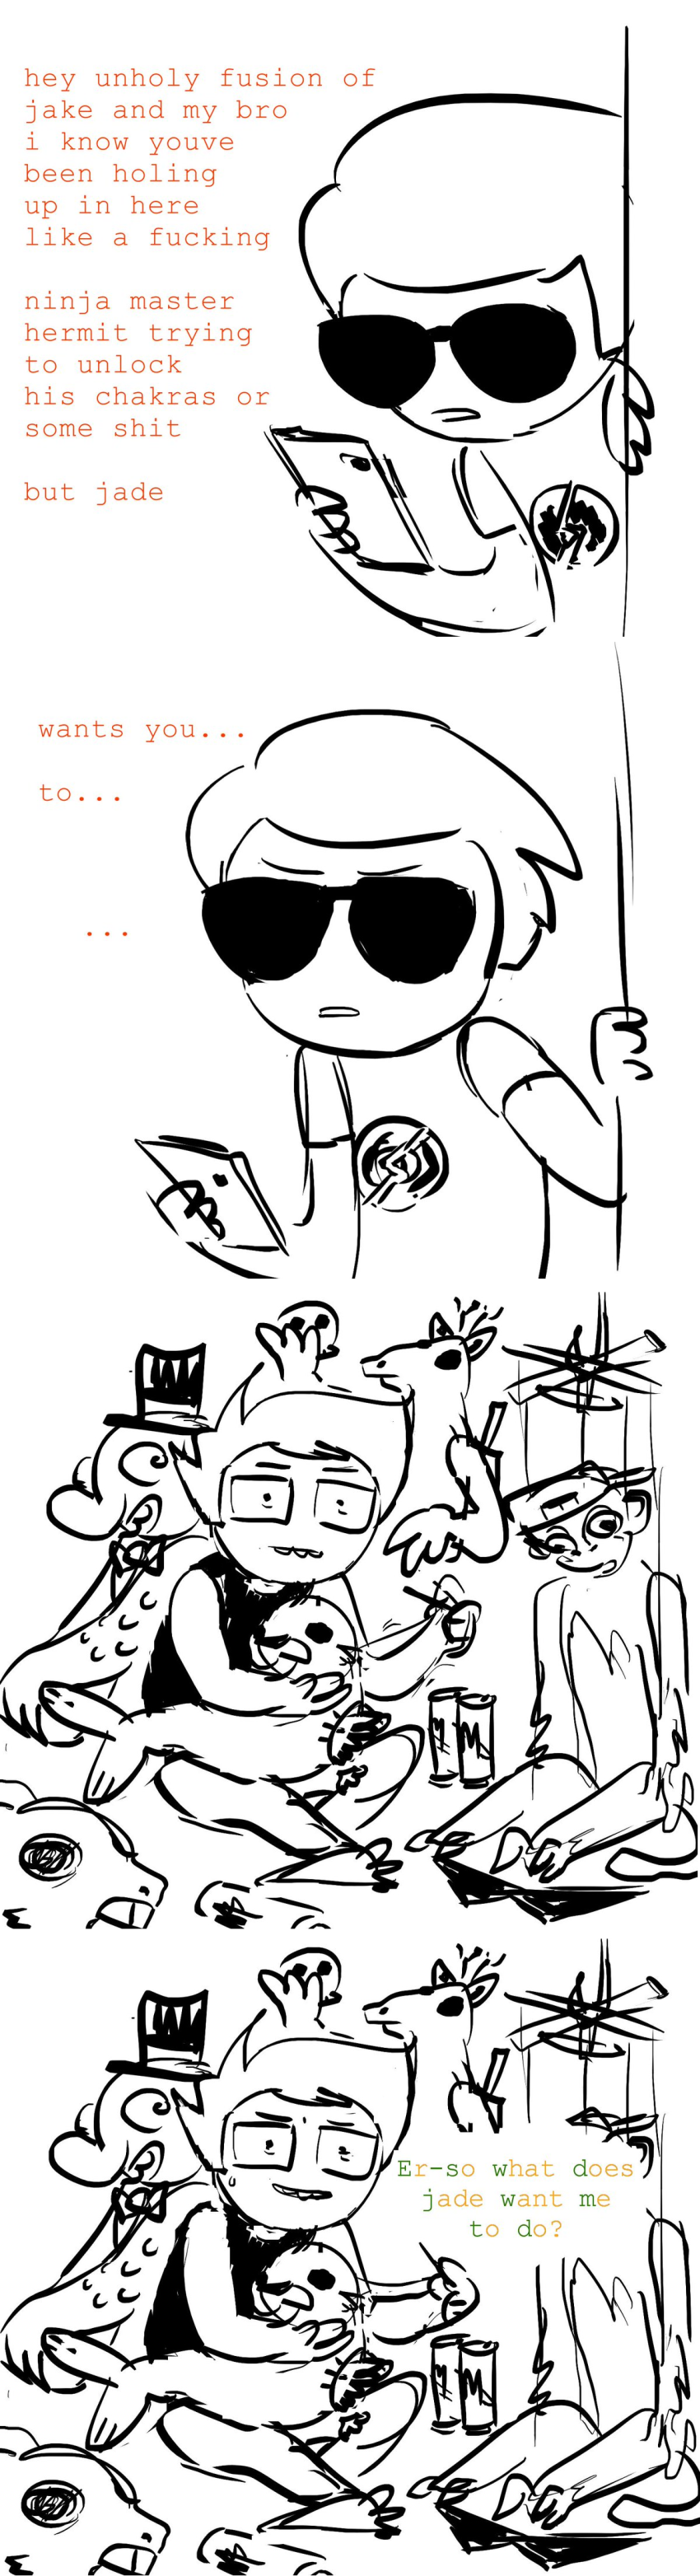 comic dave_strider dirk_strider jake_english tacosnpie text wut